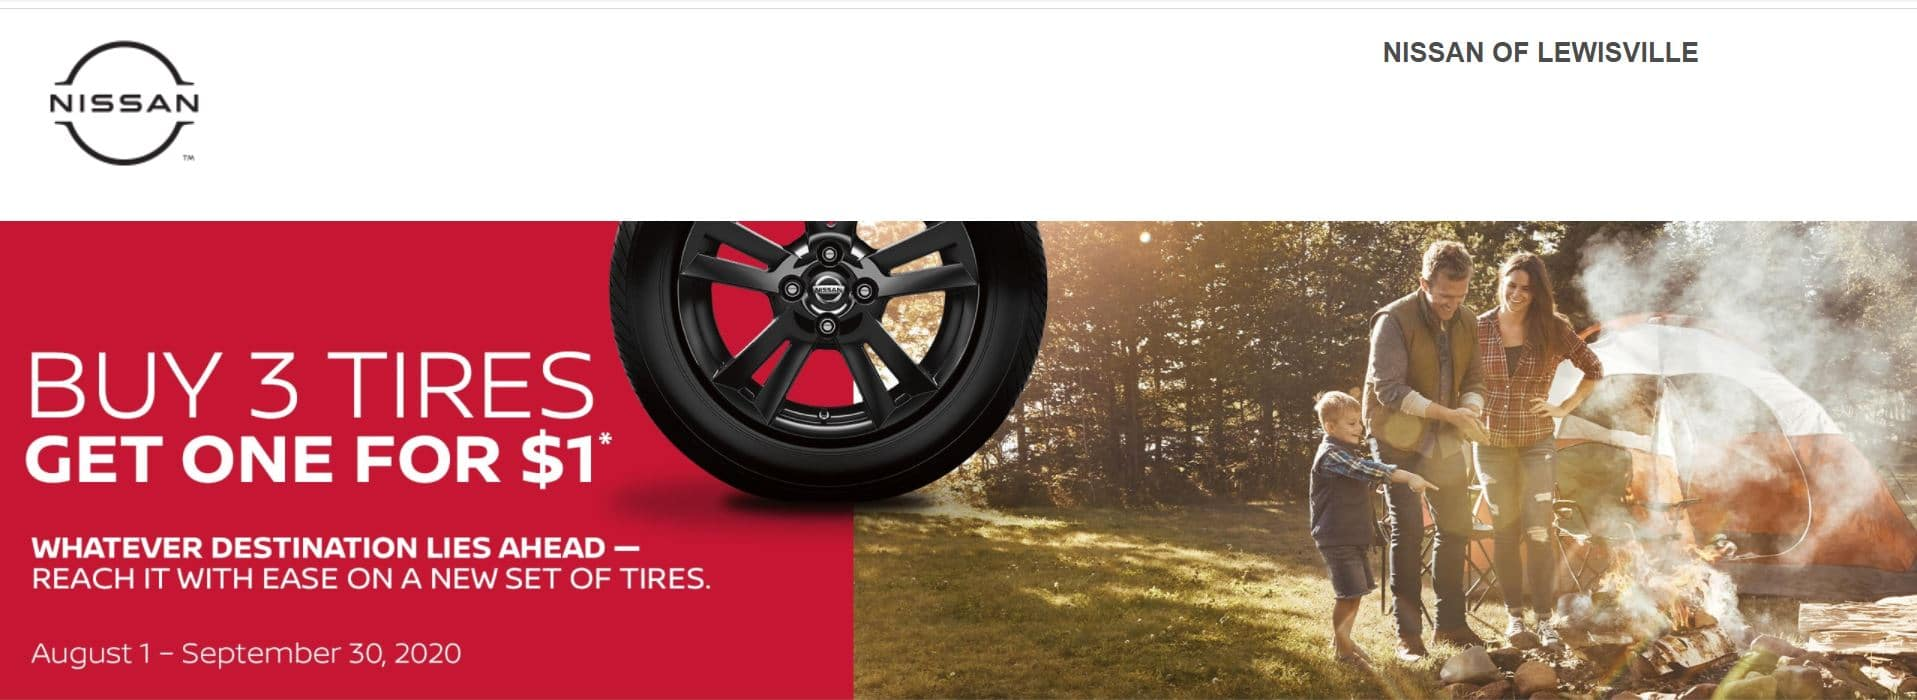 Tire Special Image